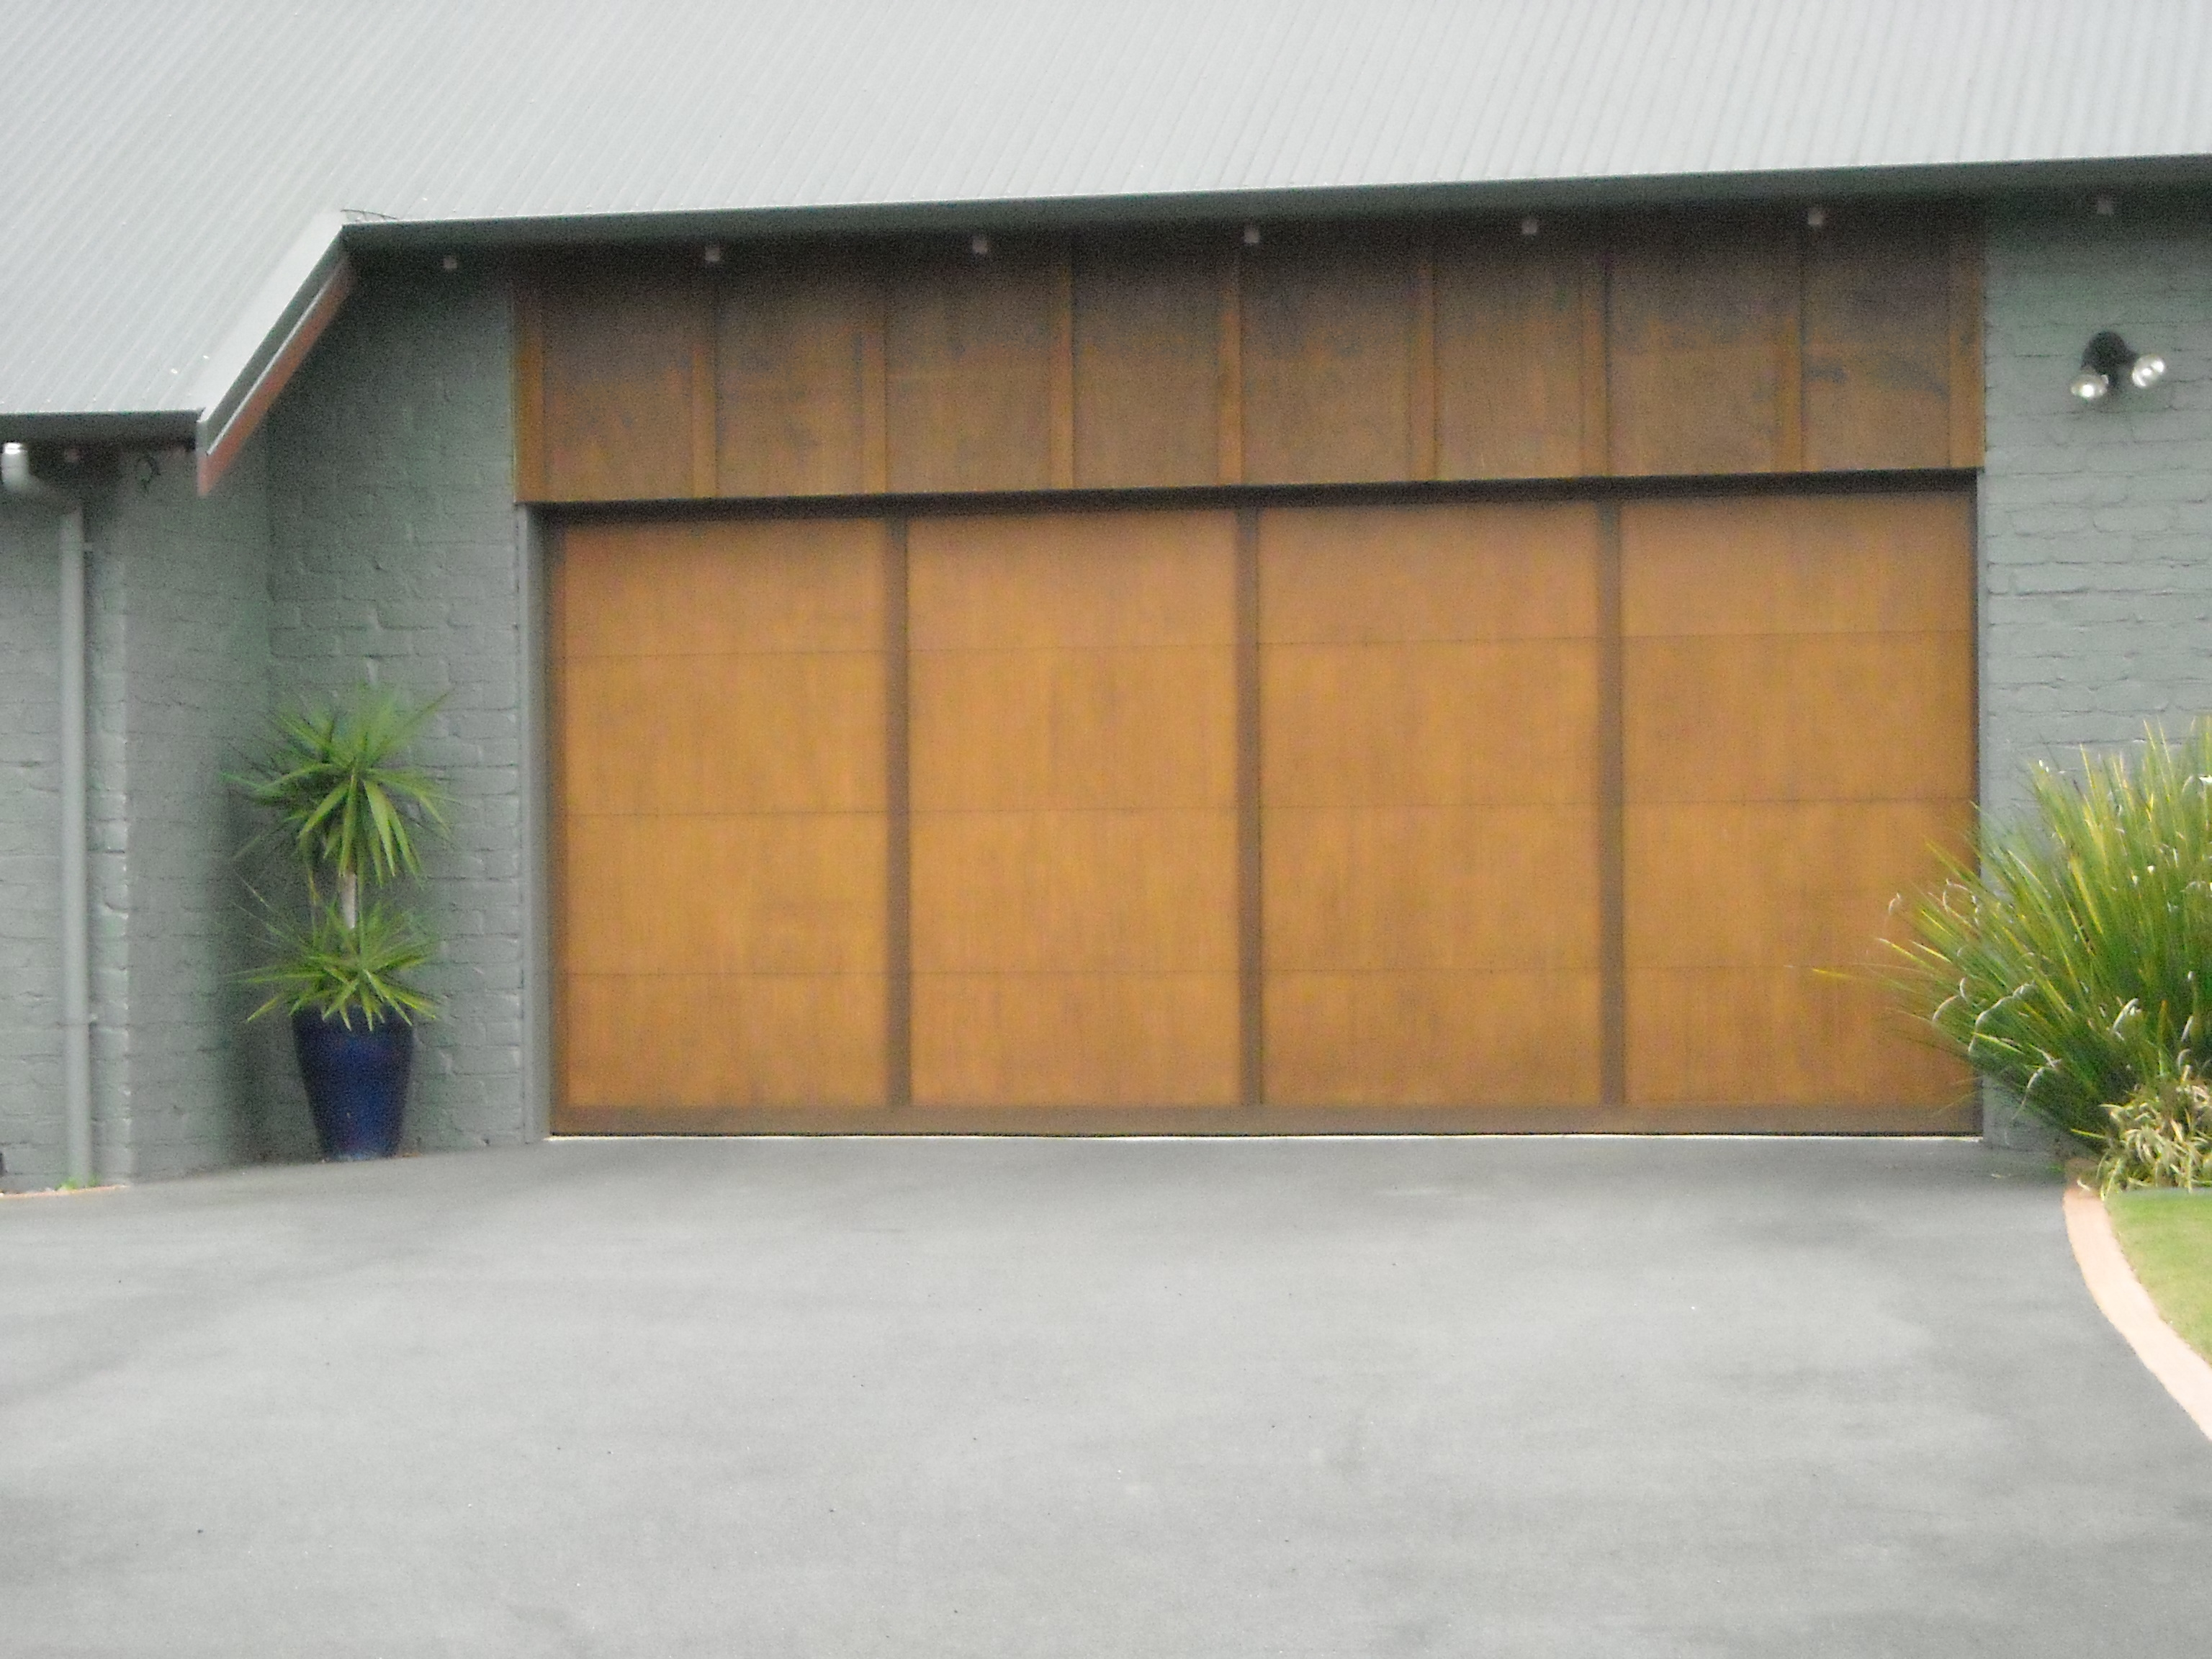 sectional ply batten garage door